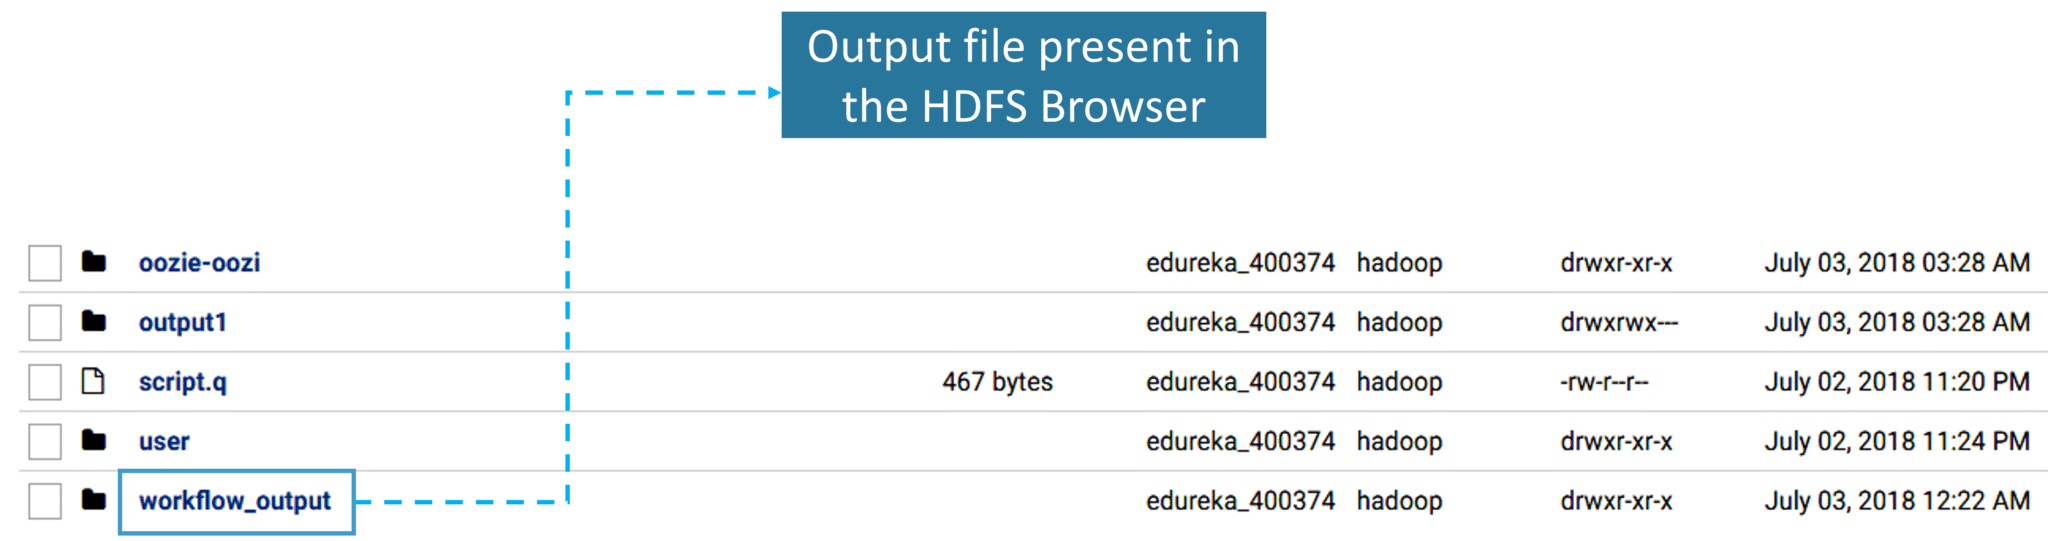 output file of the HDFS browser-Cloudera Hadoop-Edureka